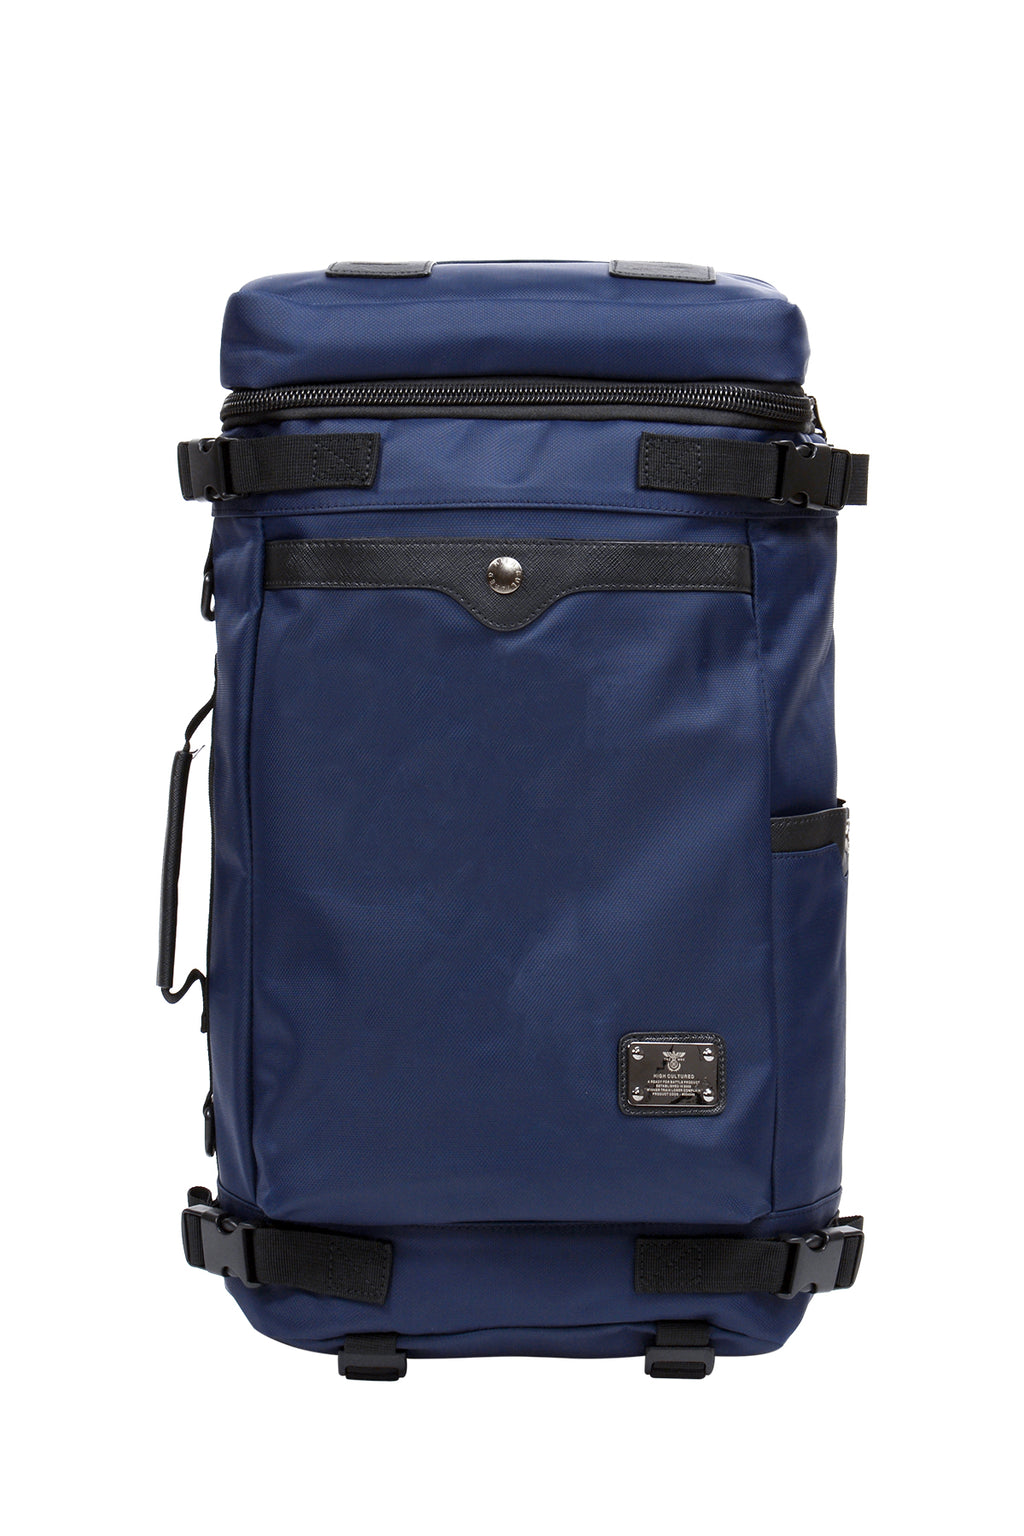 BASIC MULTIPURPOSE LAPTOP BACKPACK - 206